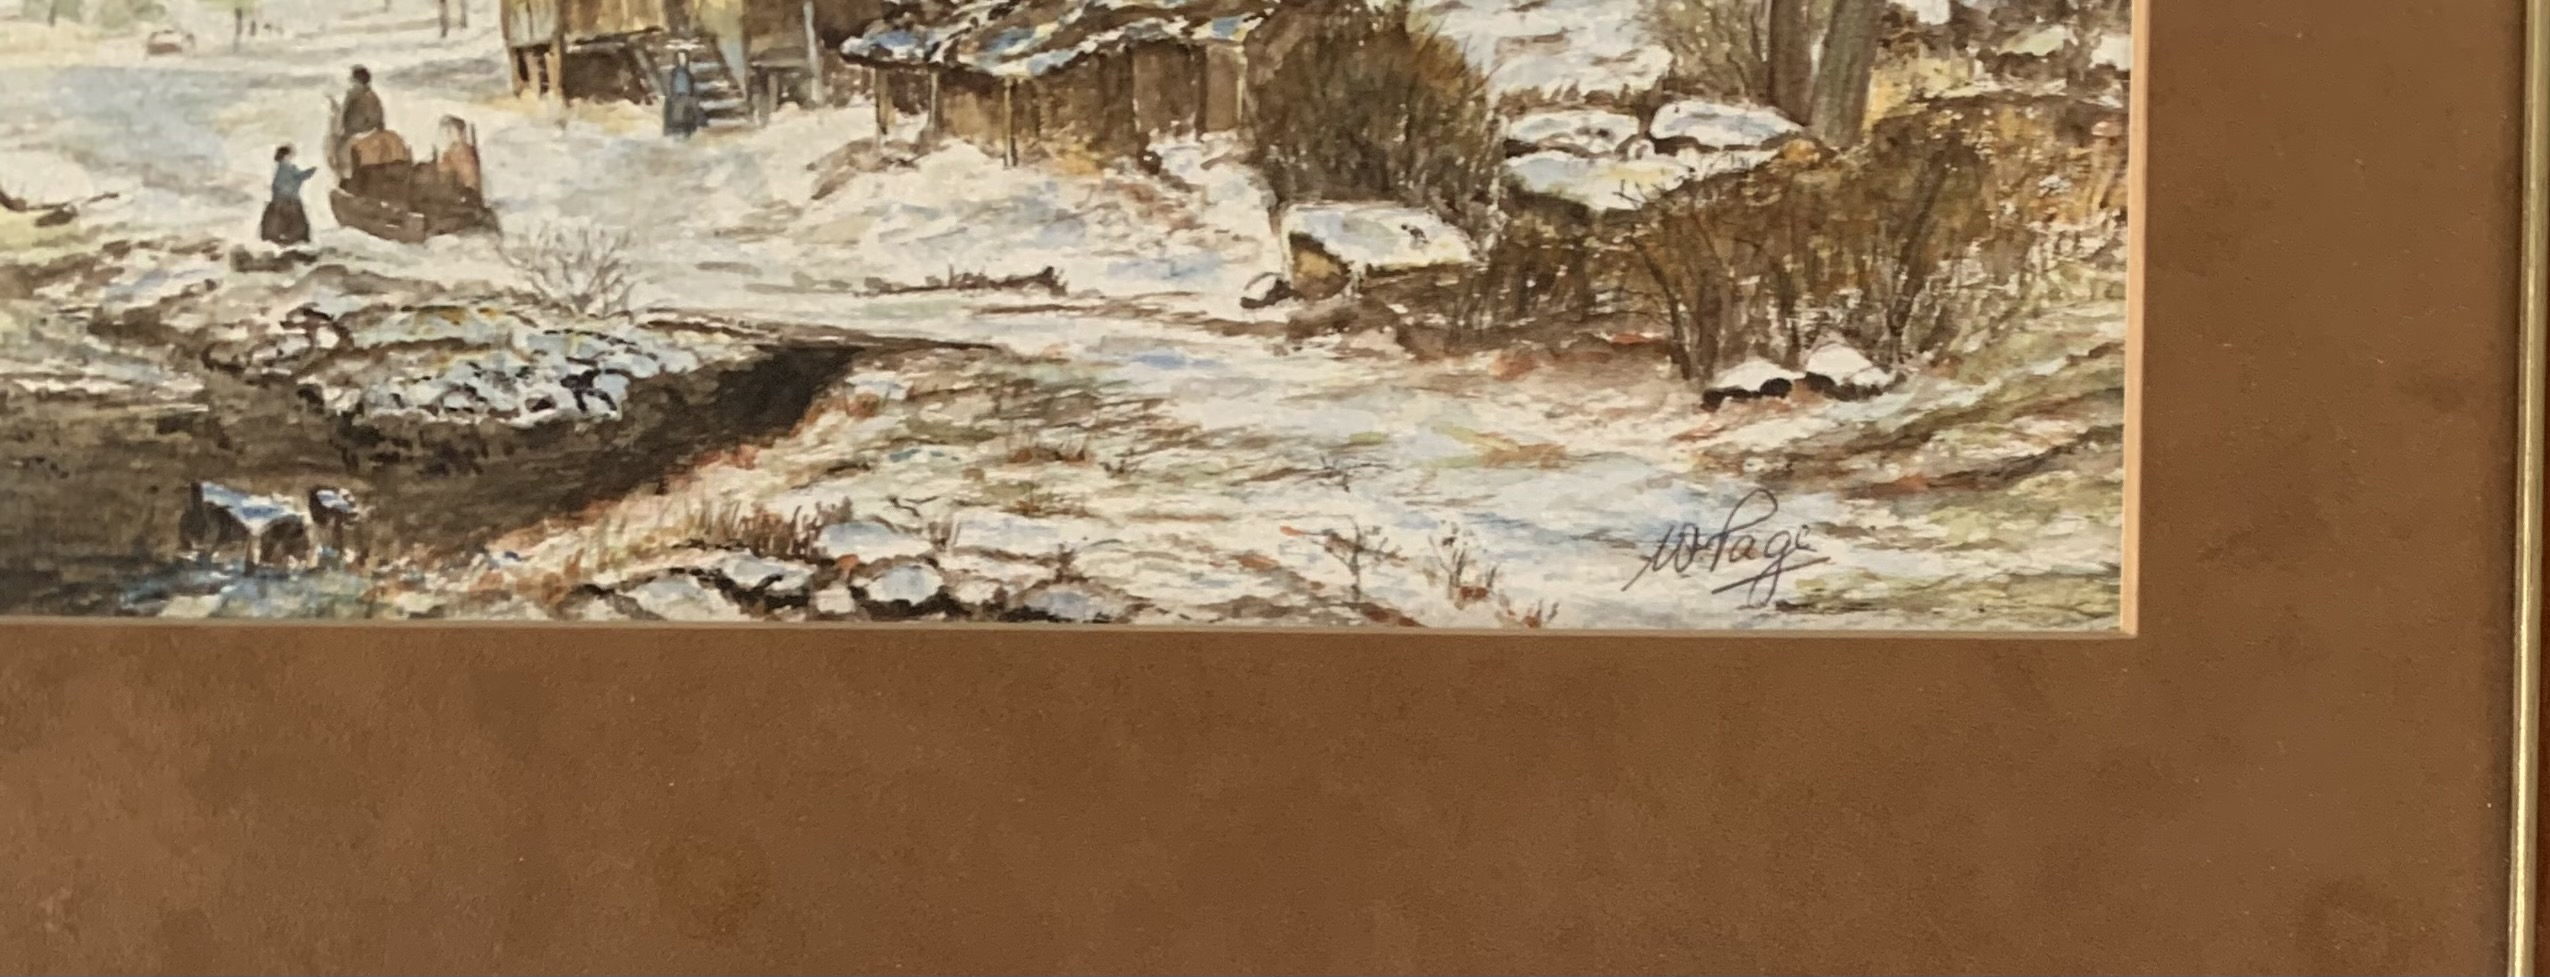 """Watercolour of winter house and landscape by W. Page. Image 15"""" x 11"""", frame 19.5"""" x 16"""". Headrow - Image 2 of 3"""